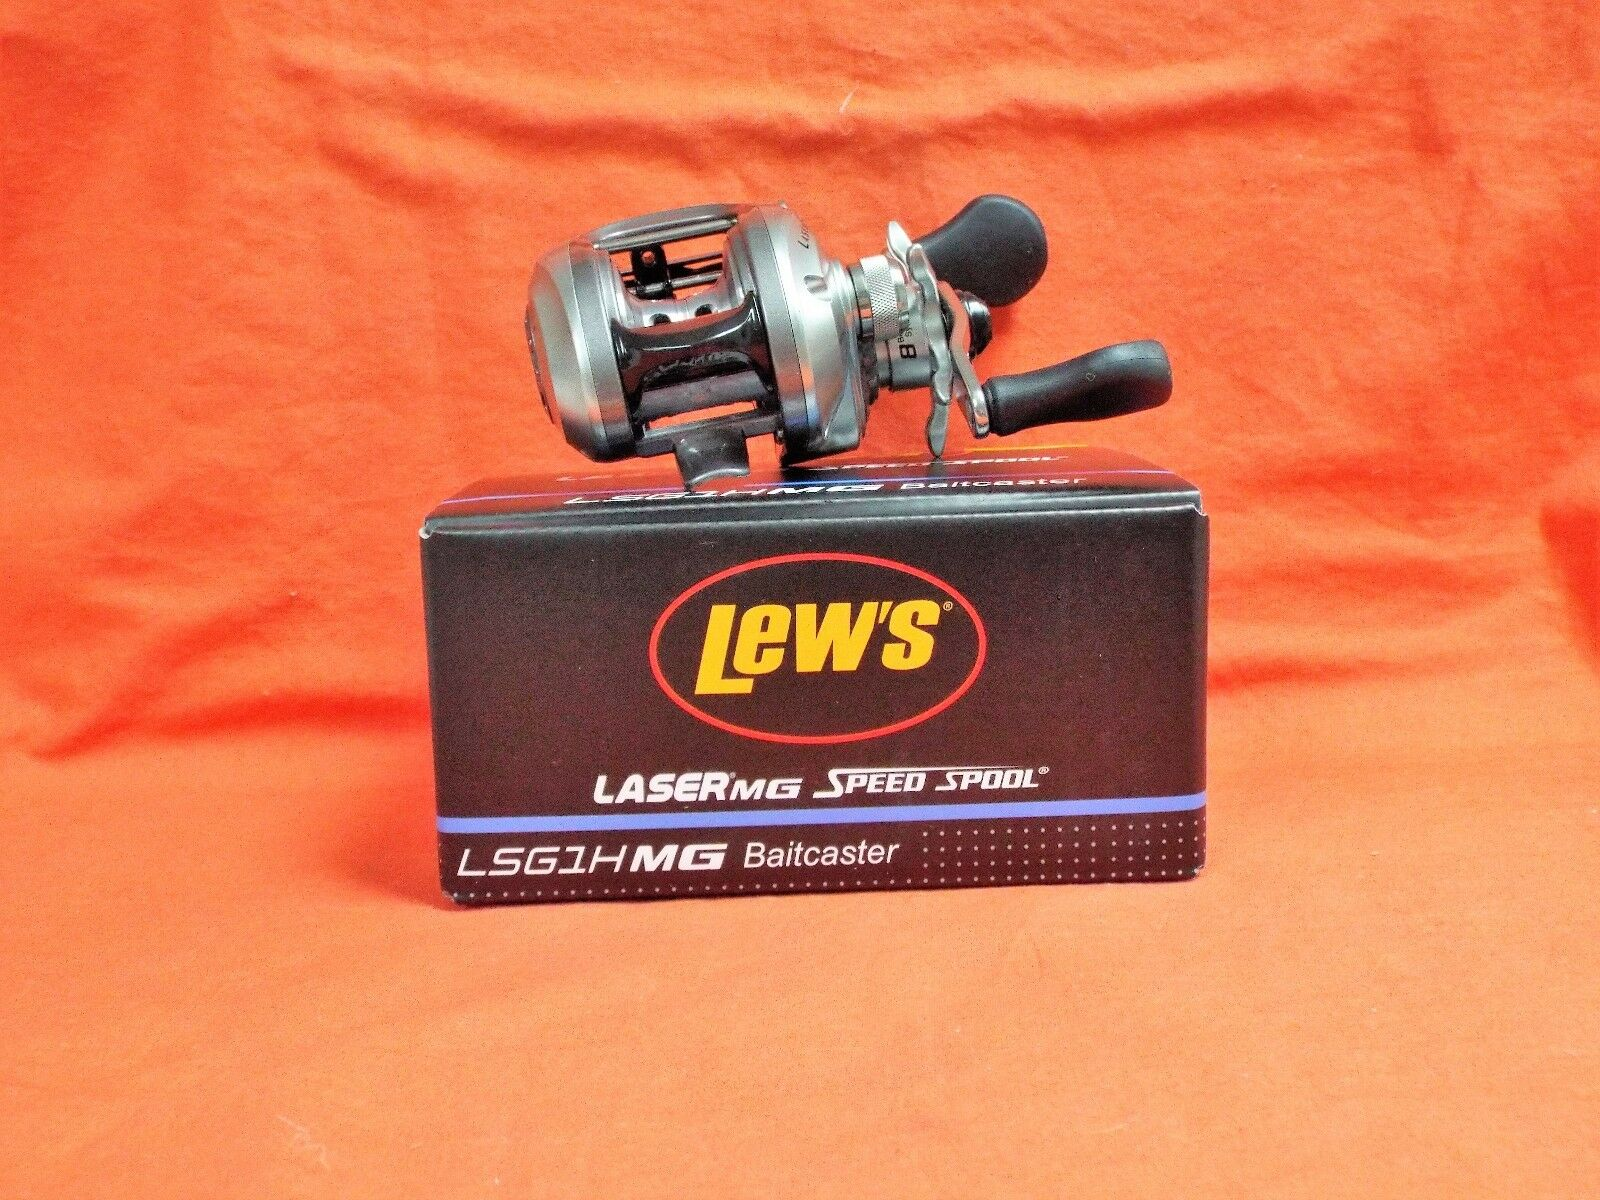 LEW'S Laser MG Speed Spool Series Baitcast  Reel Gear Ratio 6.4 1  LSG1HMG  more affordable